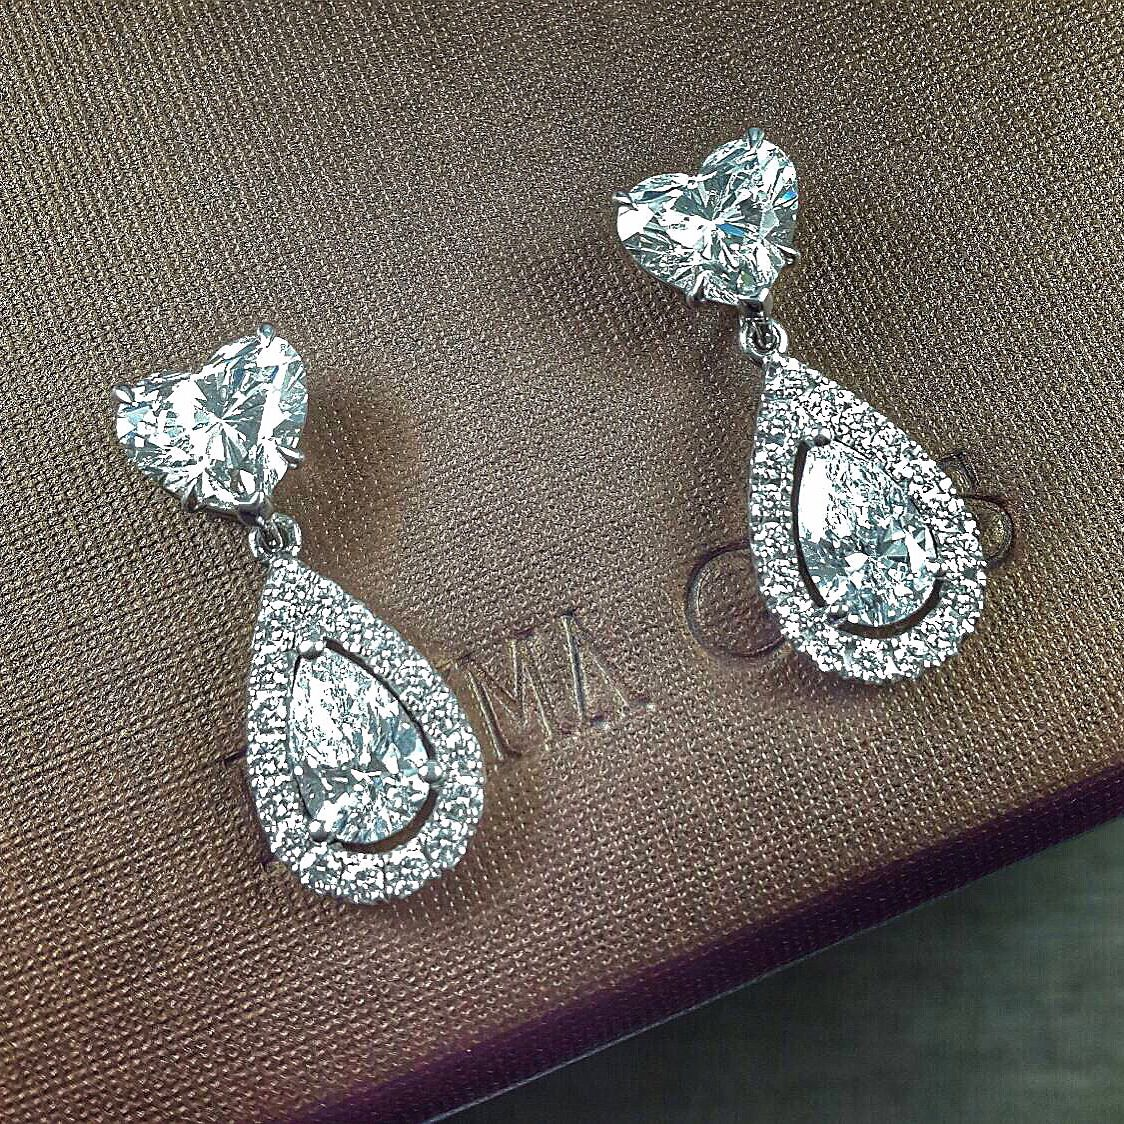 A gorgeous pair of diamond earrings set with 1carat heart shaped and 0.50carat pear shaped diamond from #PrimaGems #gorgeous #sweet #earrings #diamond #heartshape #pearshape #finejewelry #jewelry